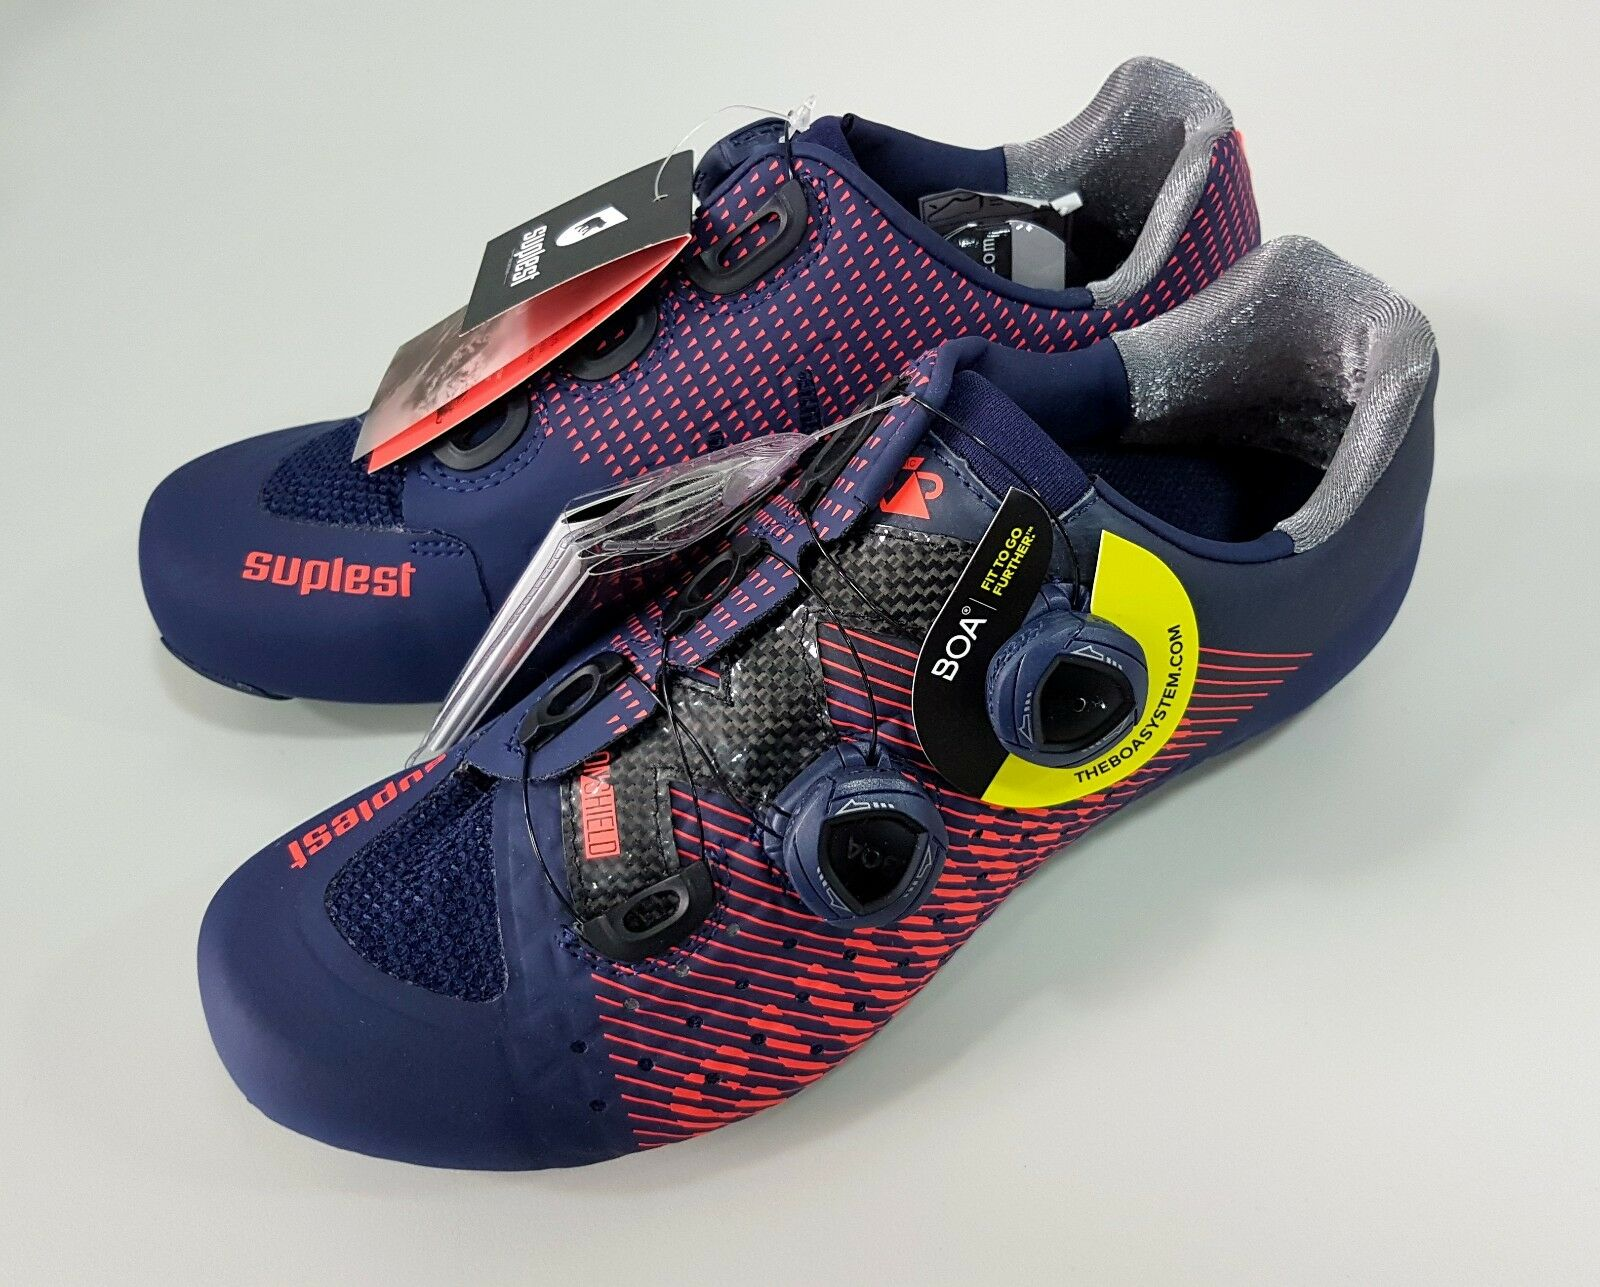 Suplest Edge 3 Pro Road Carbon Bicycle Cycling shoes Size 42 Navy Coral